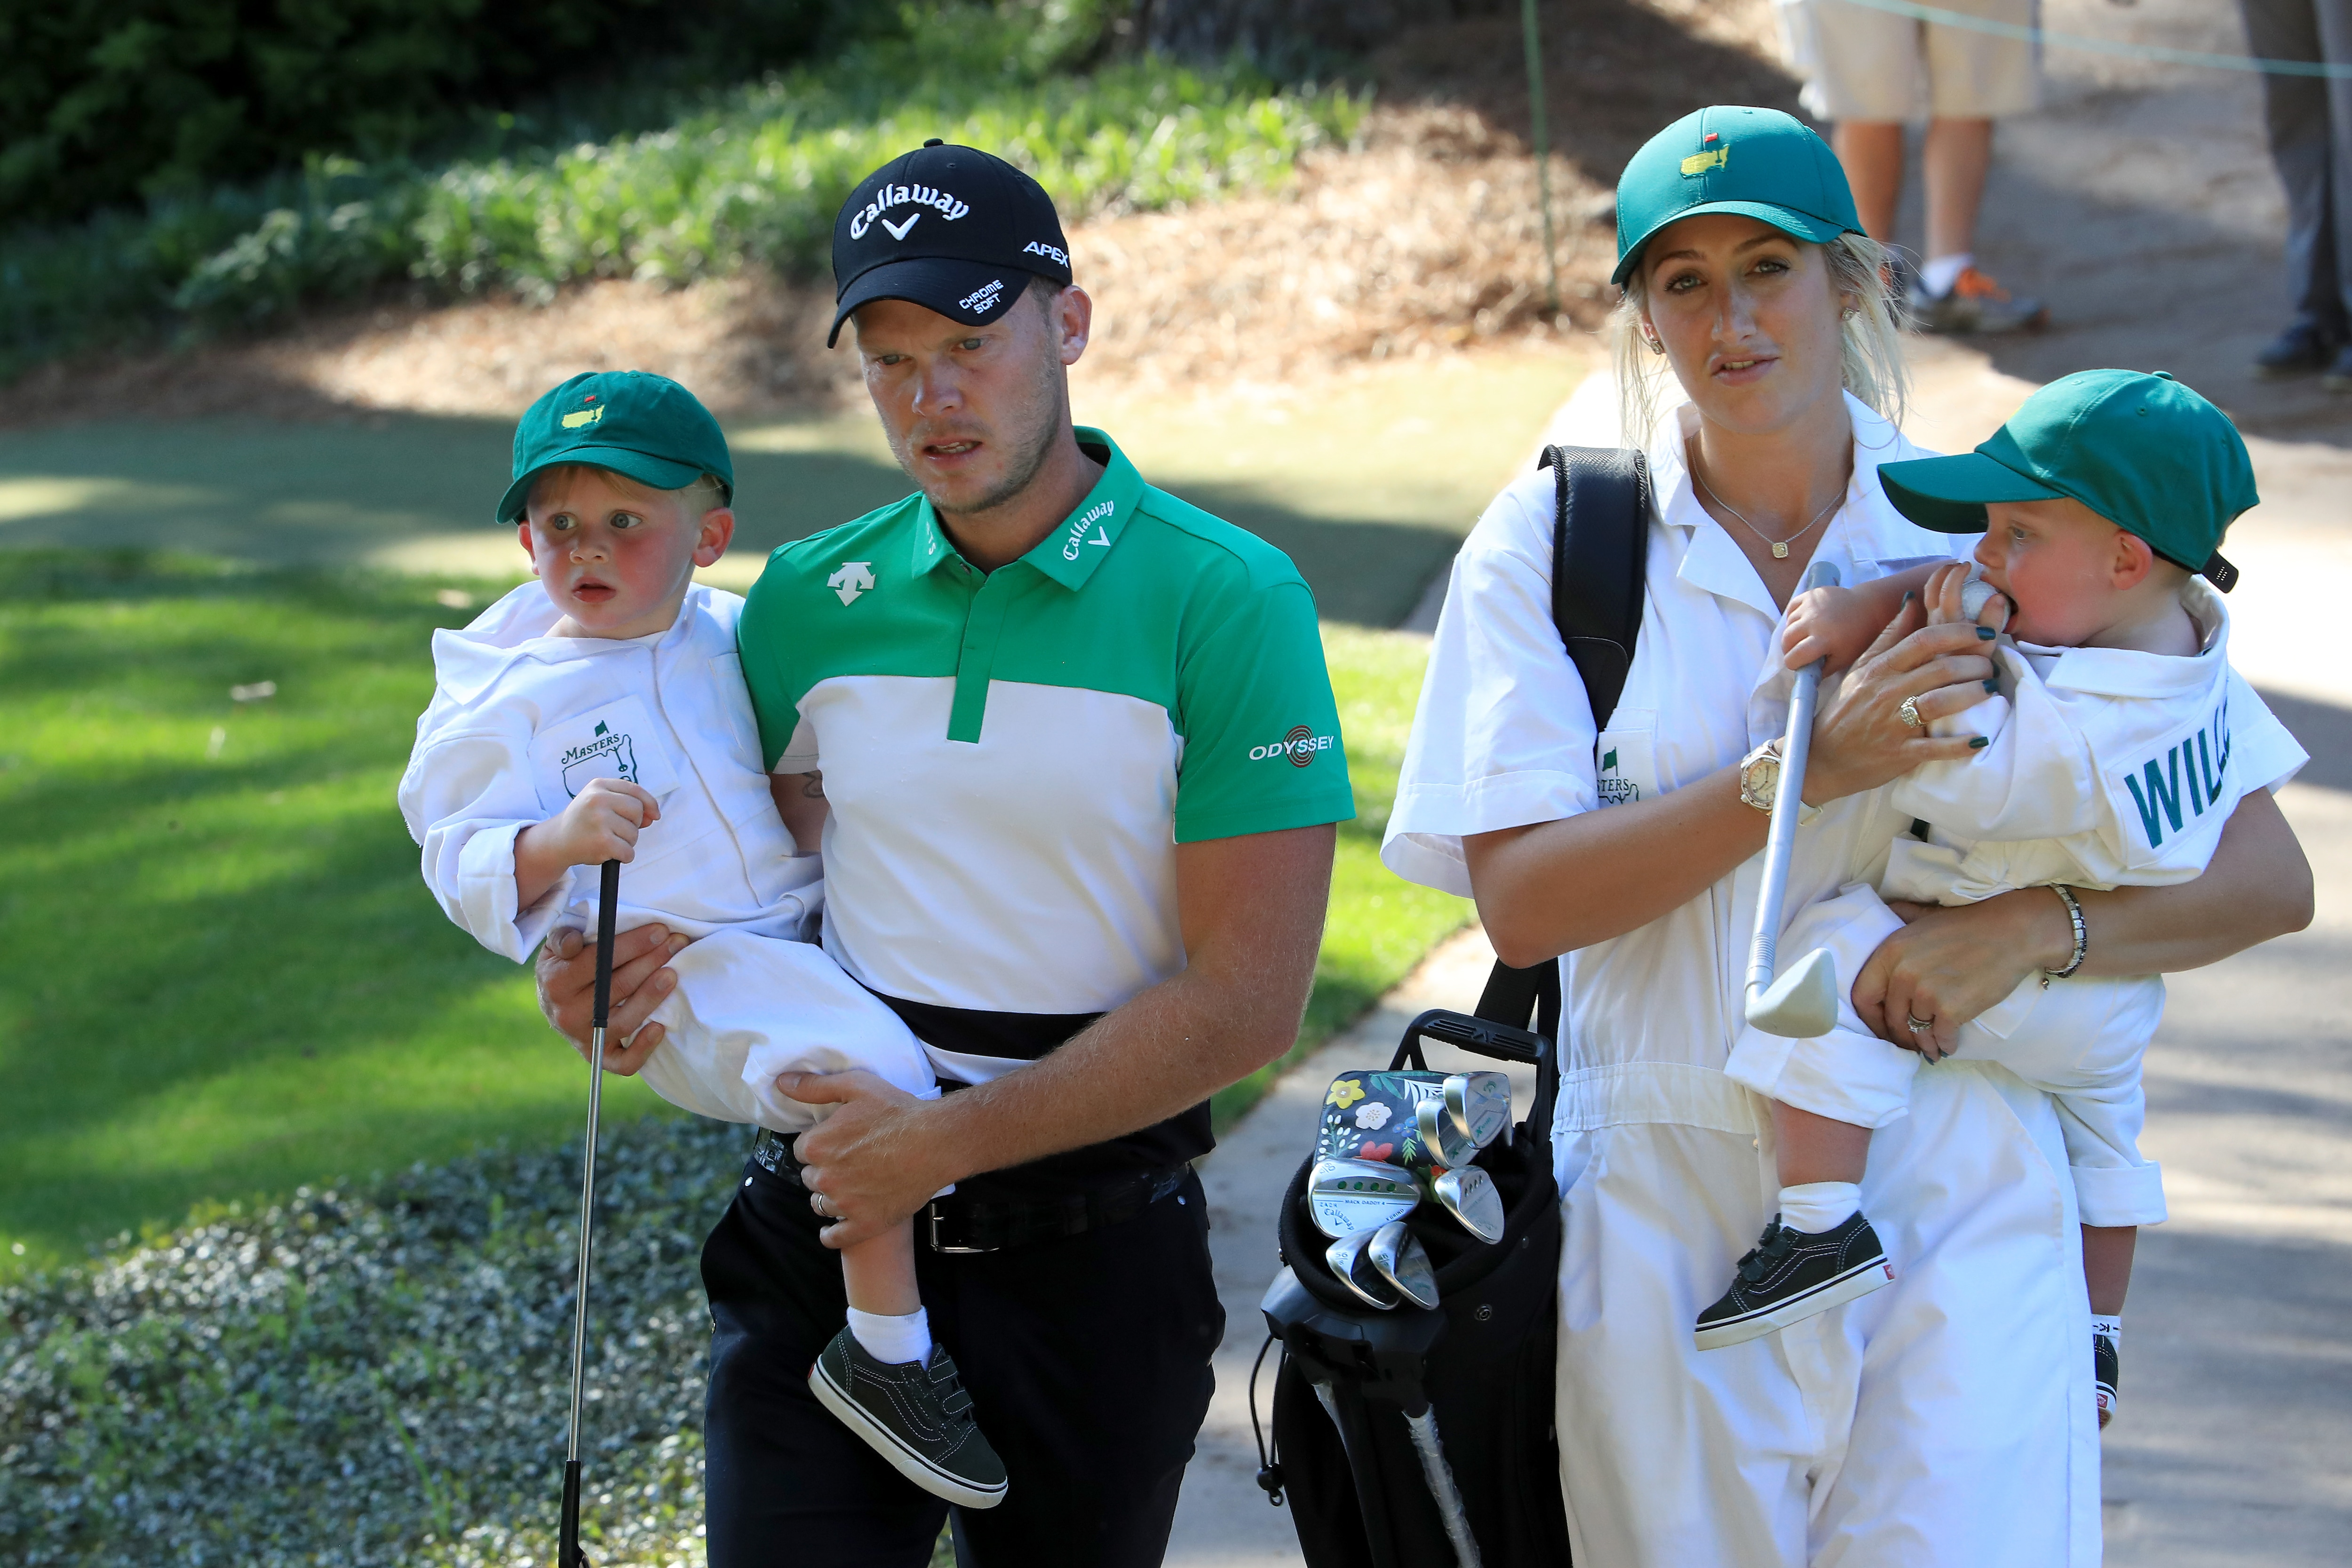 Danny and Nicole Willett with their children